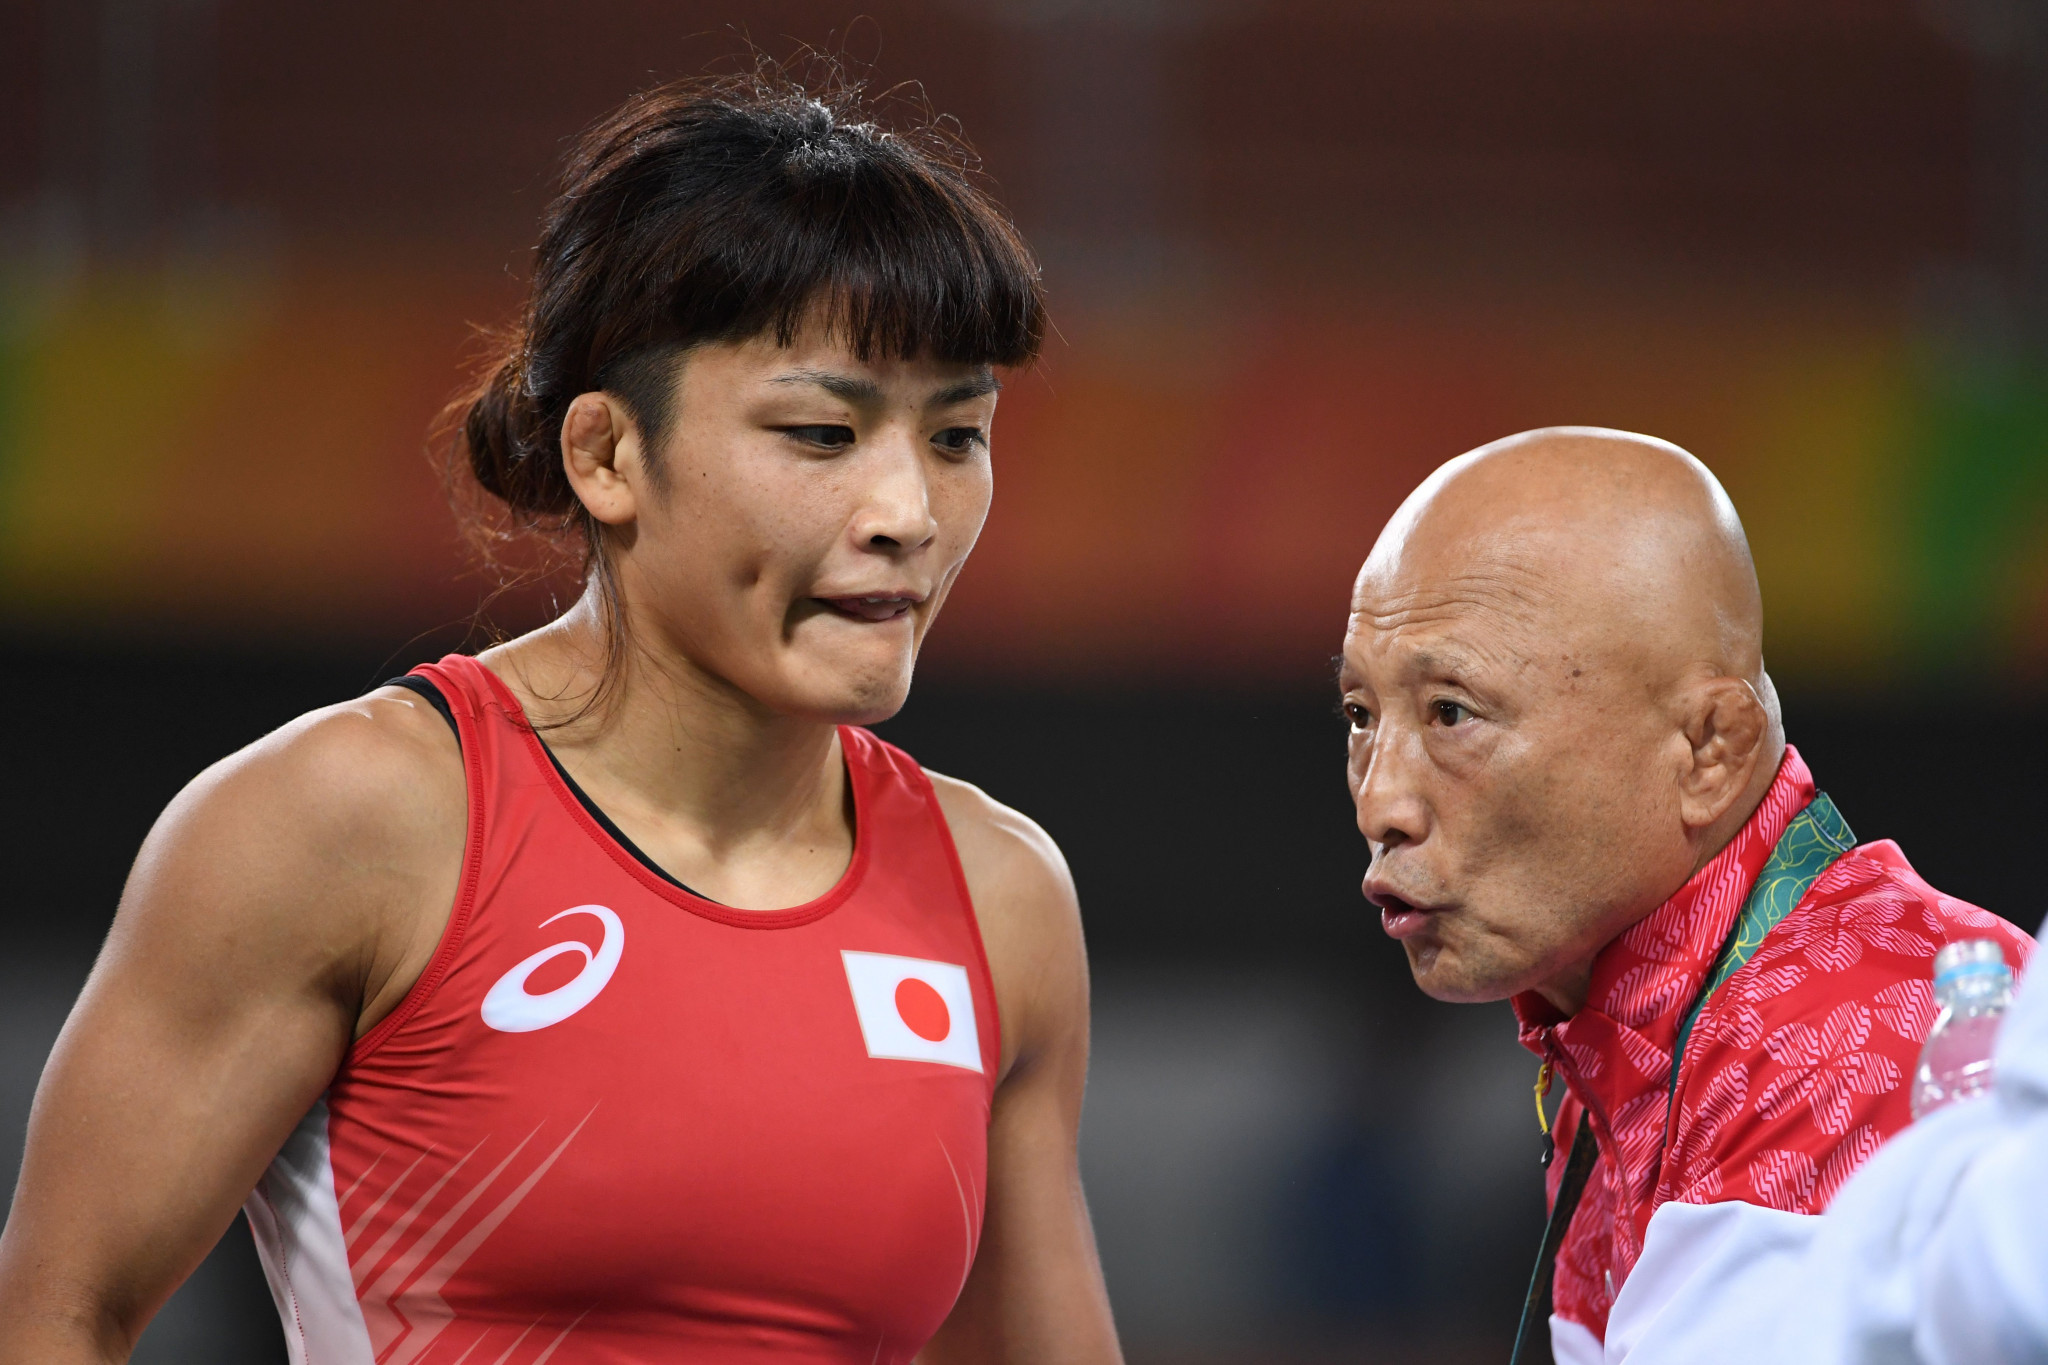 Four-time Olympic gold medallist Kaori Icho, left, was harassed by Kazuhito Sakae, the Japan Wrestling Federation's development director, right, it has been claimed ©Getty Images